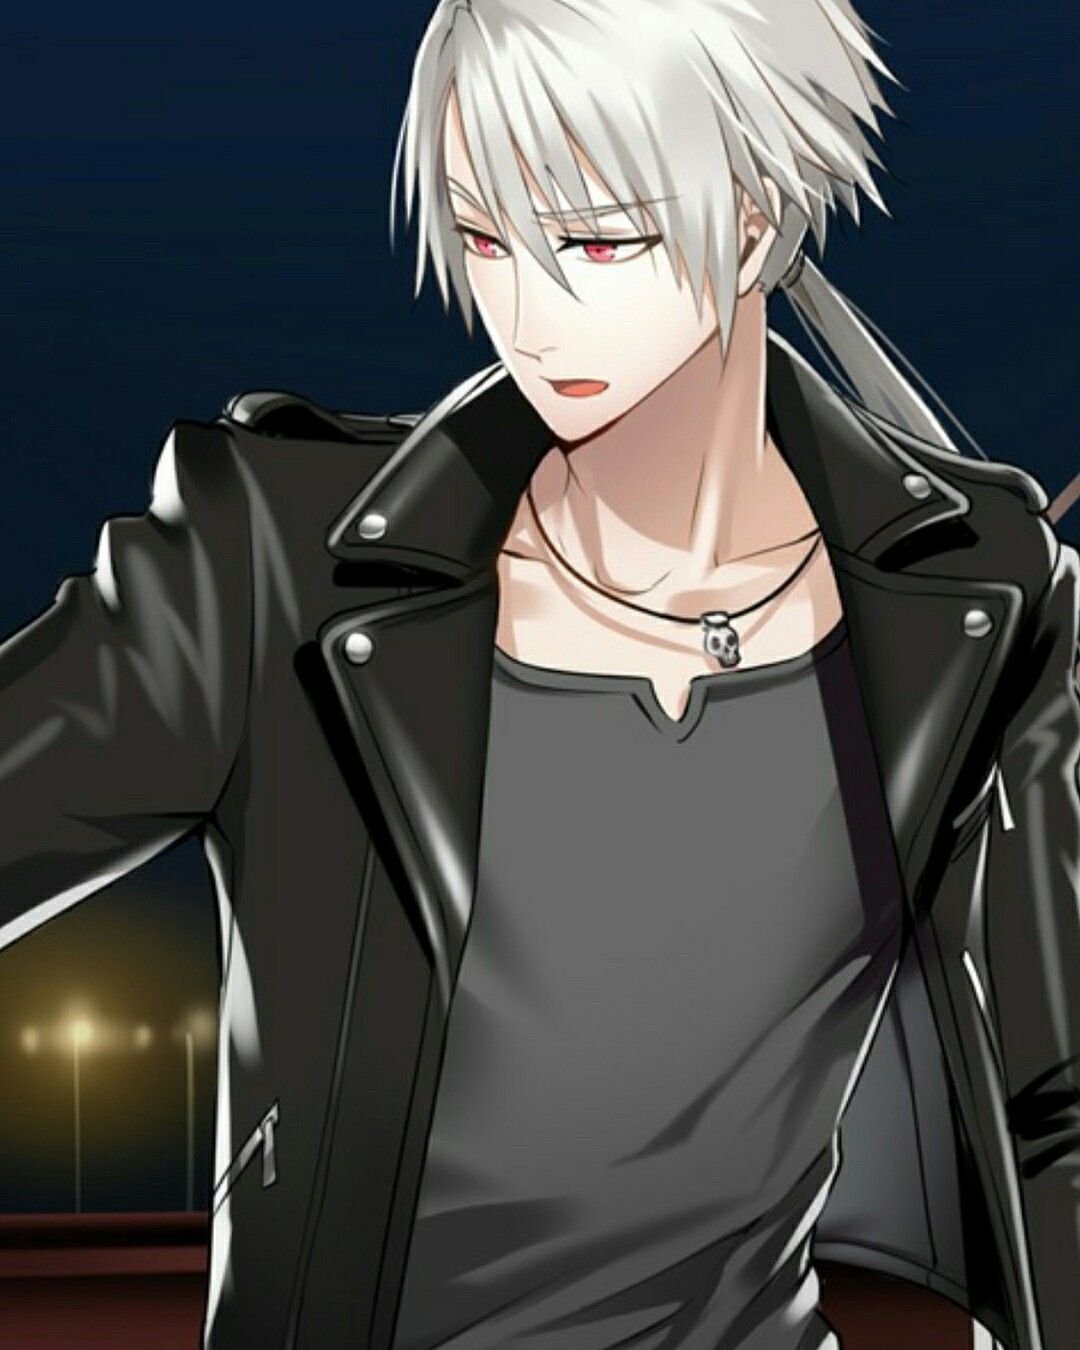 Pin by Ashley on Otome&Anime ♡ Mystic messenger, Anime